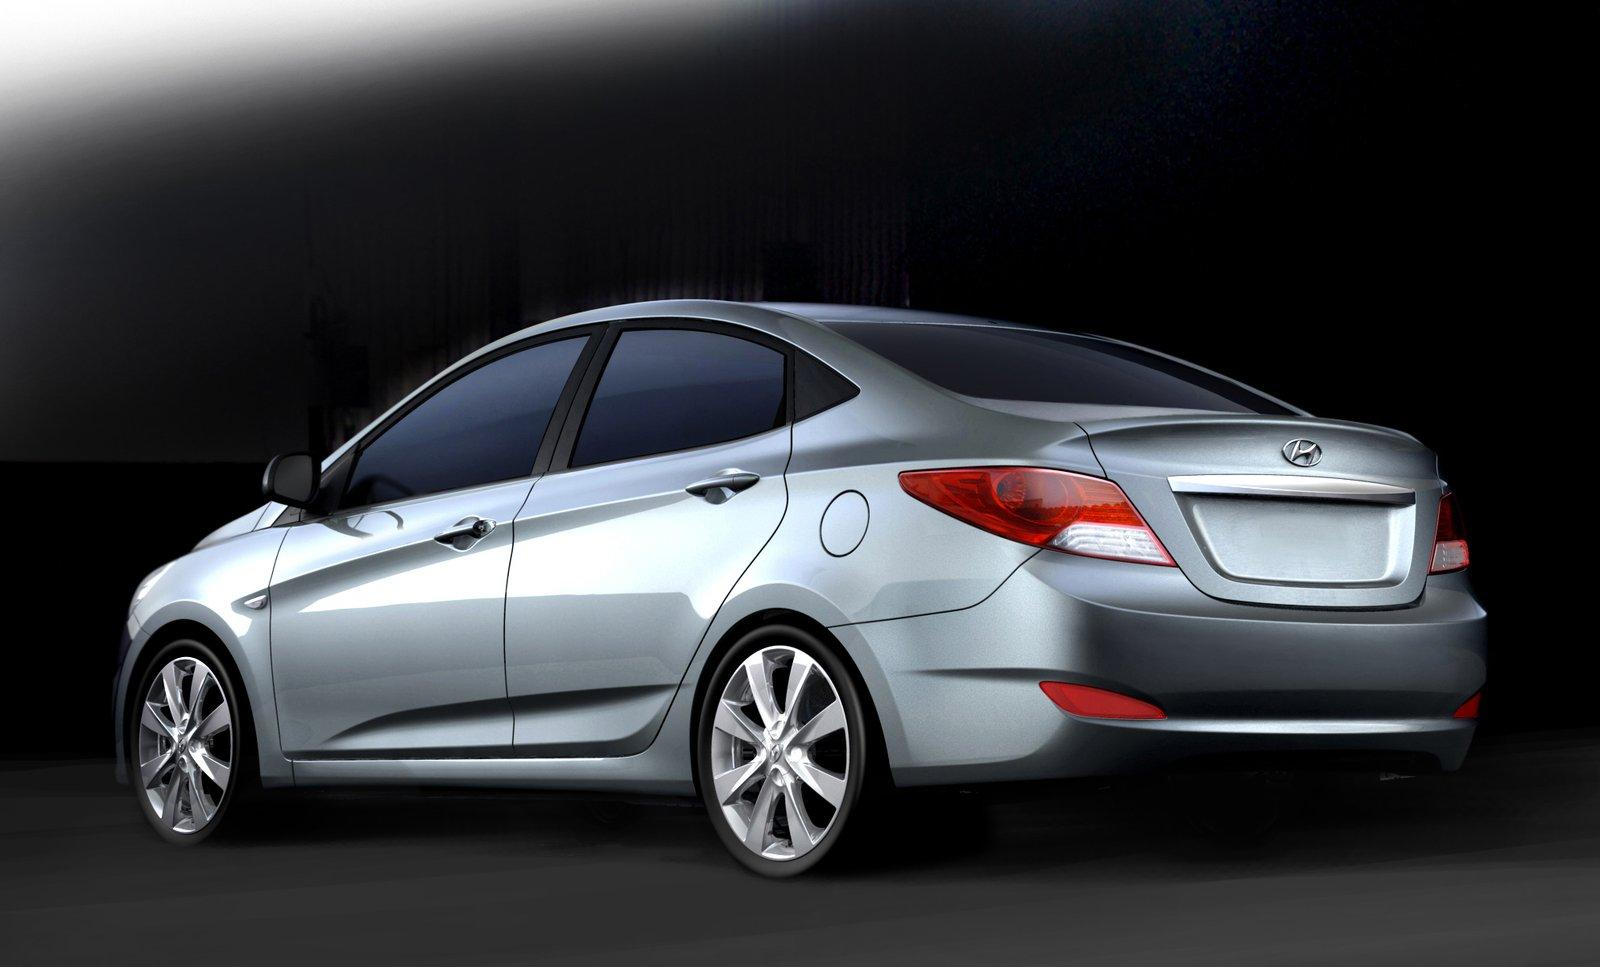 Hyundai Verna Fluidic RB 2011 Price In India Review